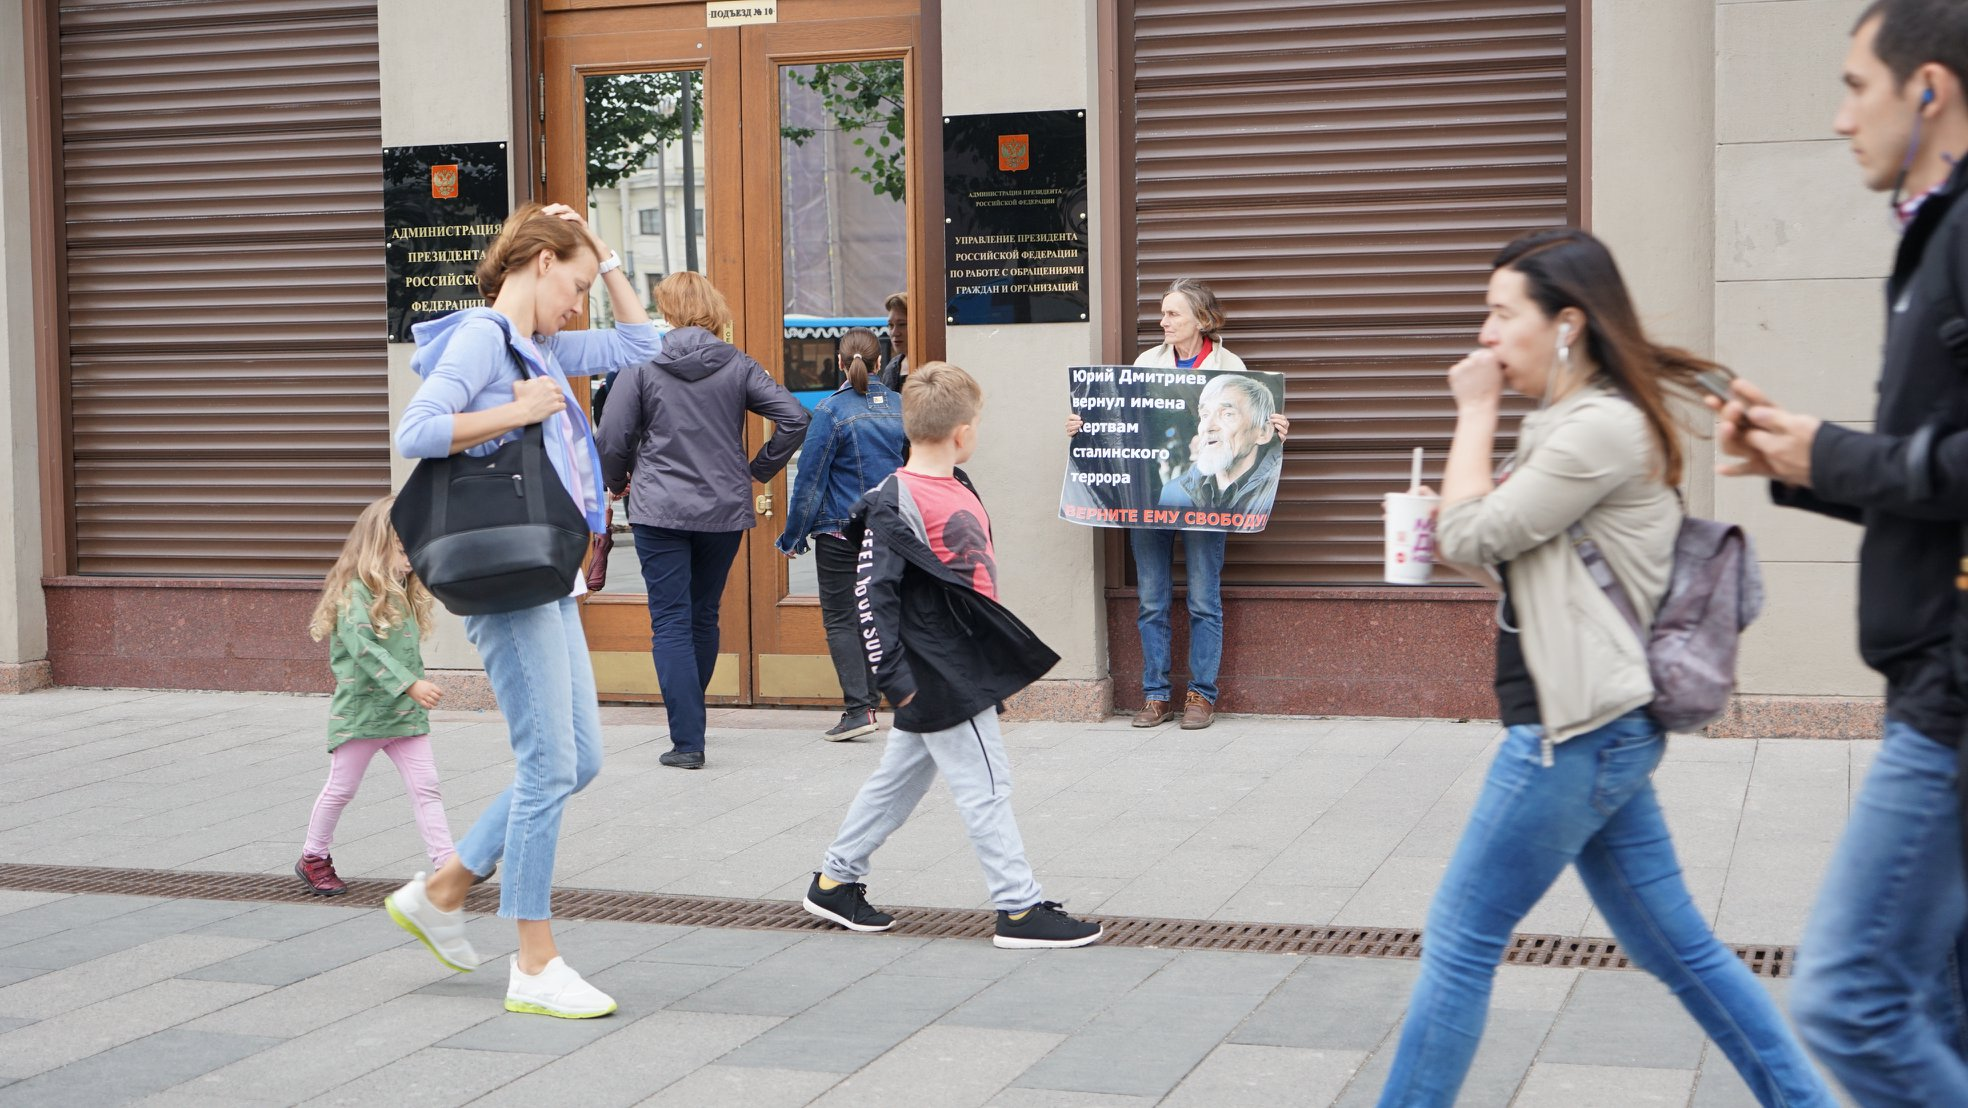 Moscow picket, 23 July